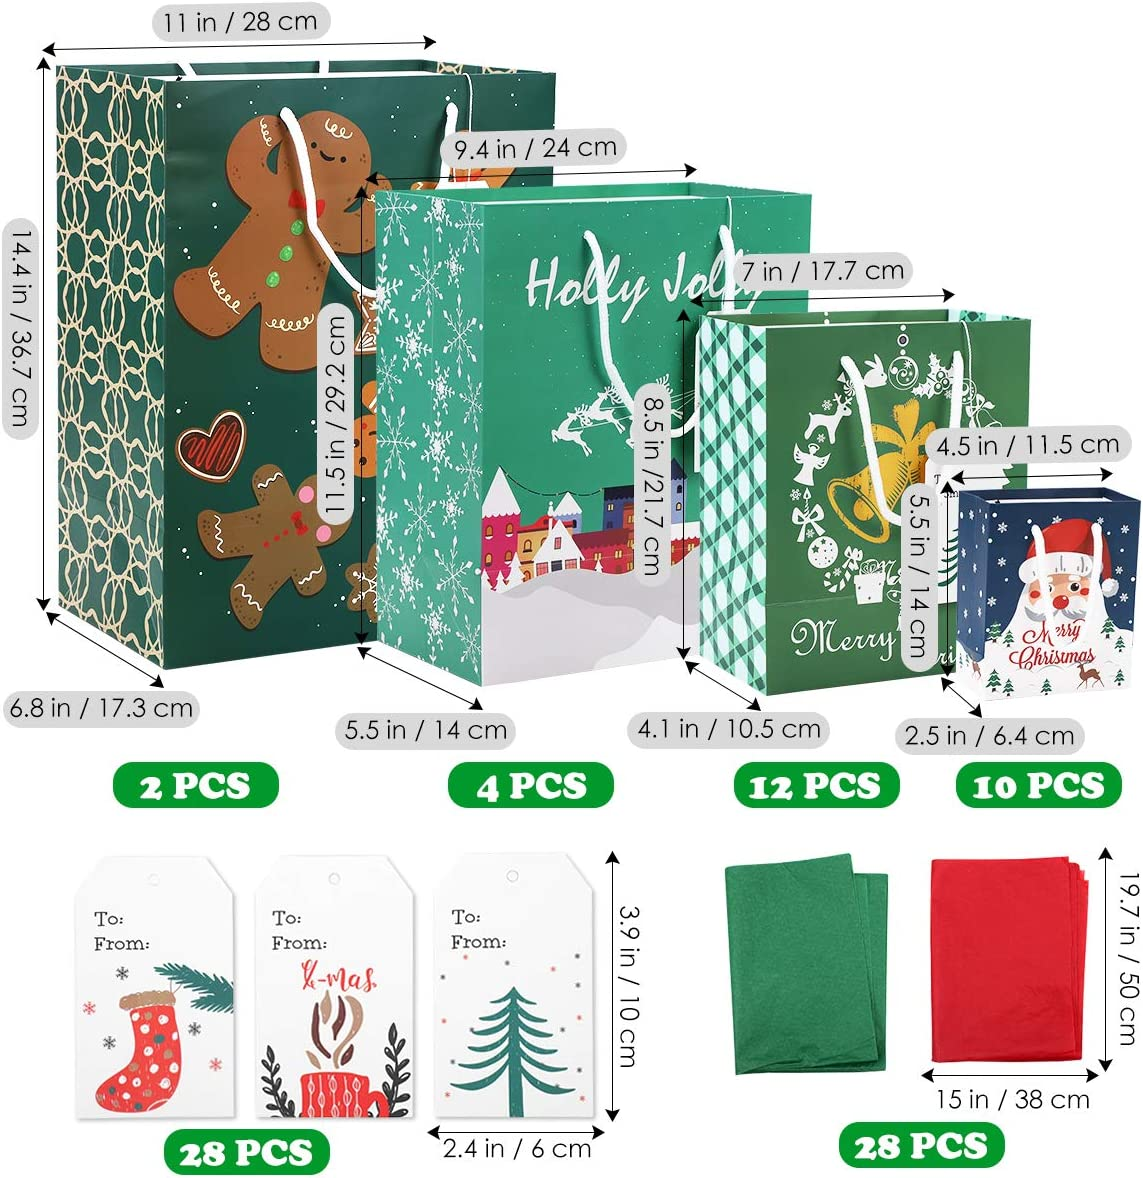 Christmas Bags for Gifts, 84 PCS with 28 Christmas Bags Gift Tags and Tissue Paper, 4 Different Sizes for Gift Wrapping